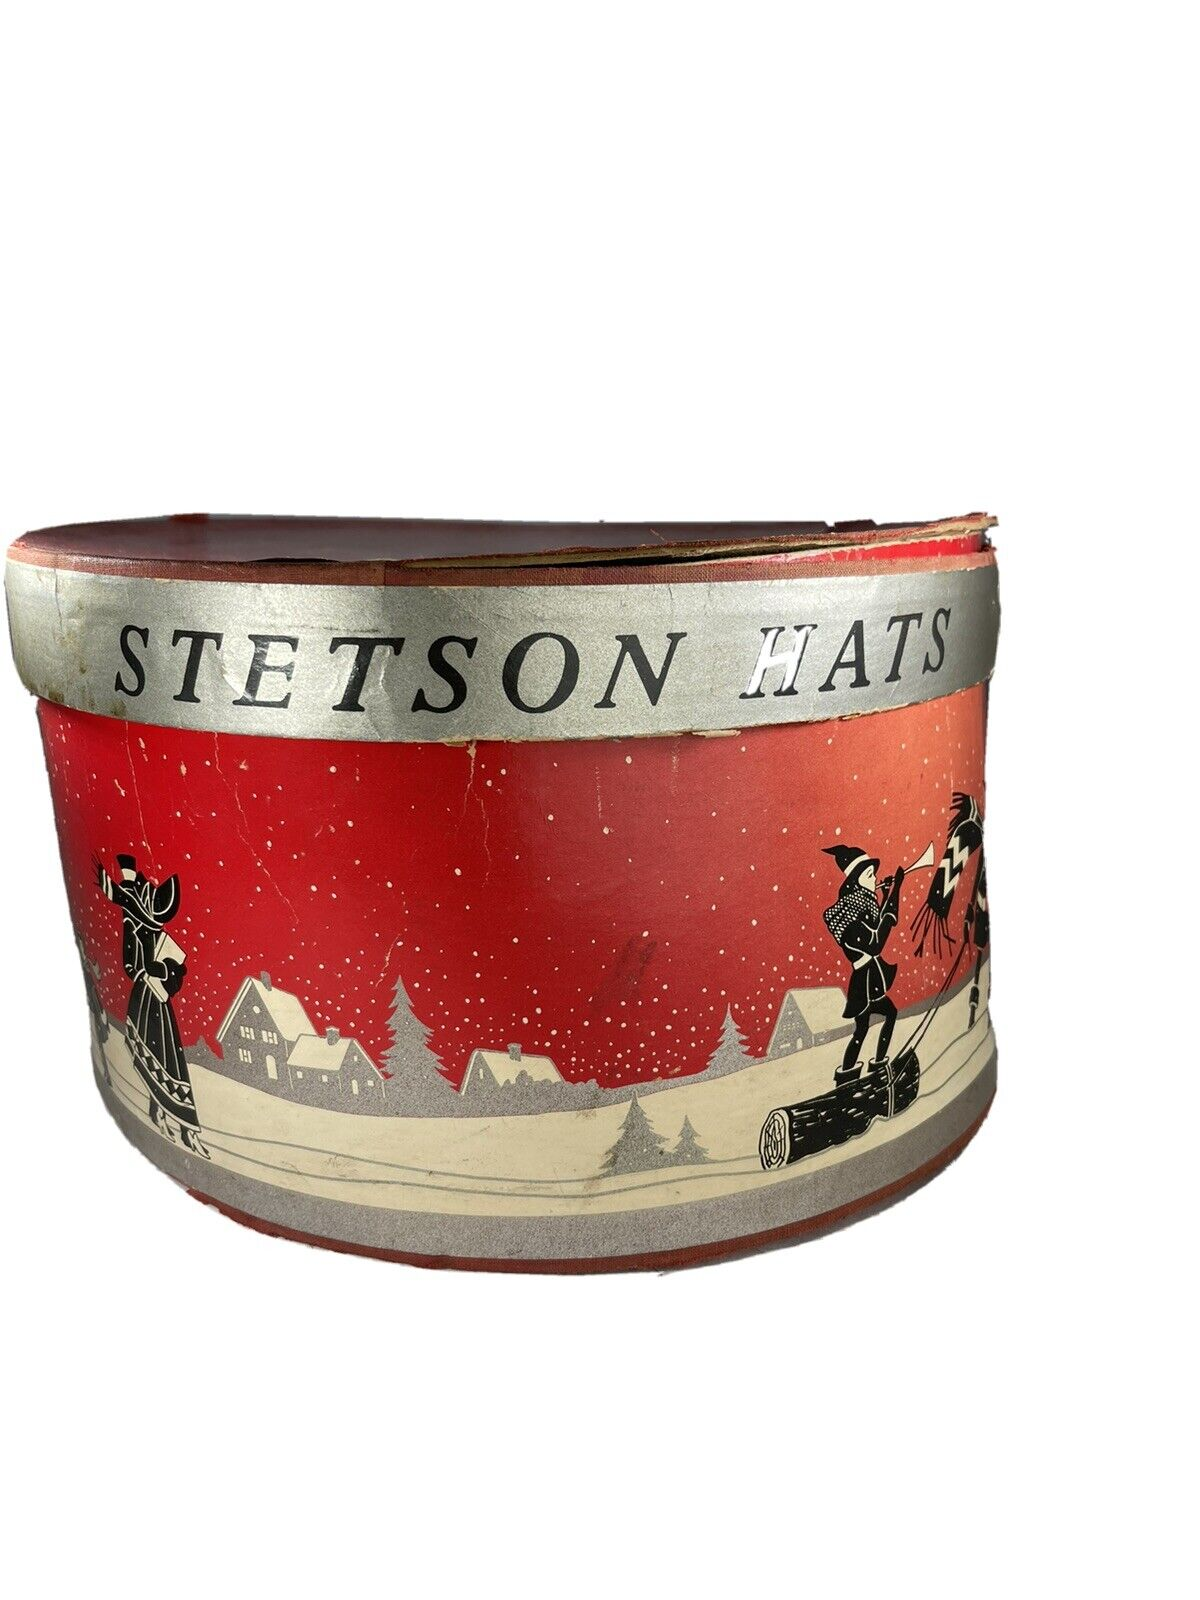 Vintage Stetson Hat Box Holiday Scene With Insert 16.5x14.5 x8.5 Inches